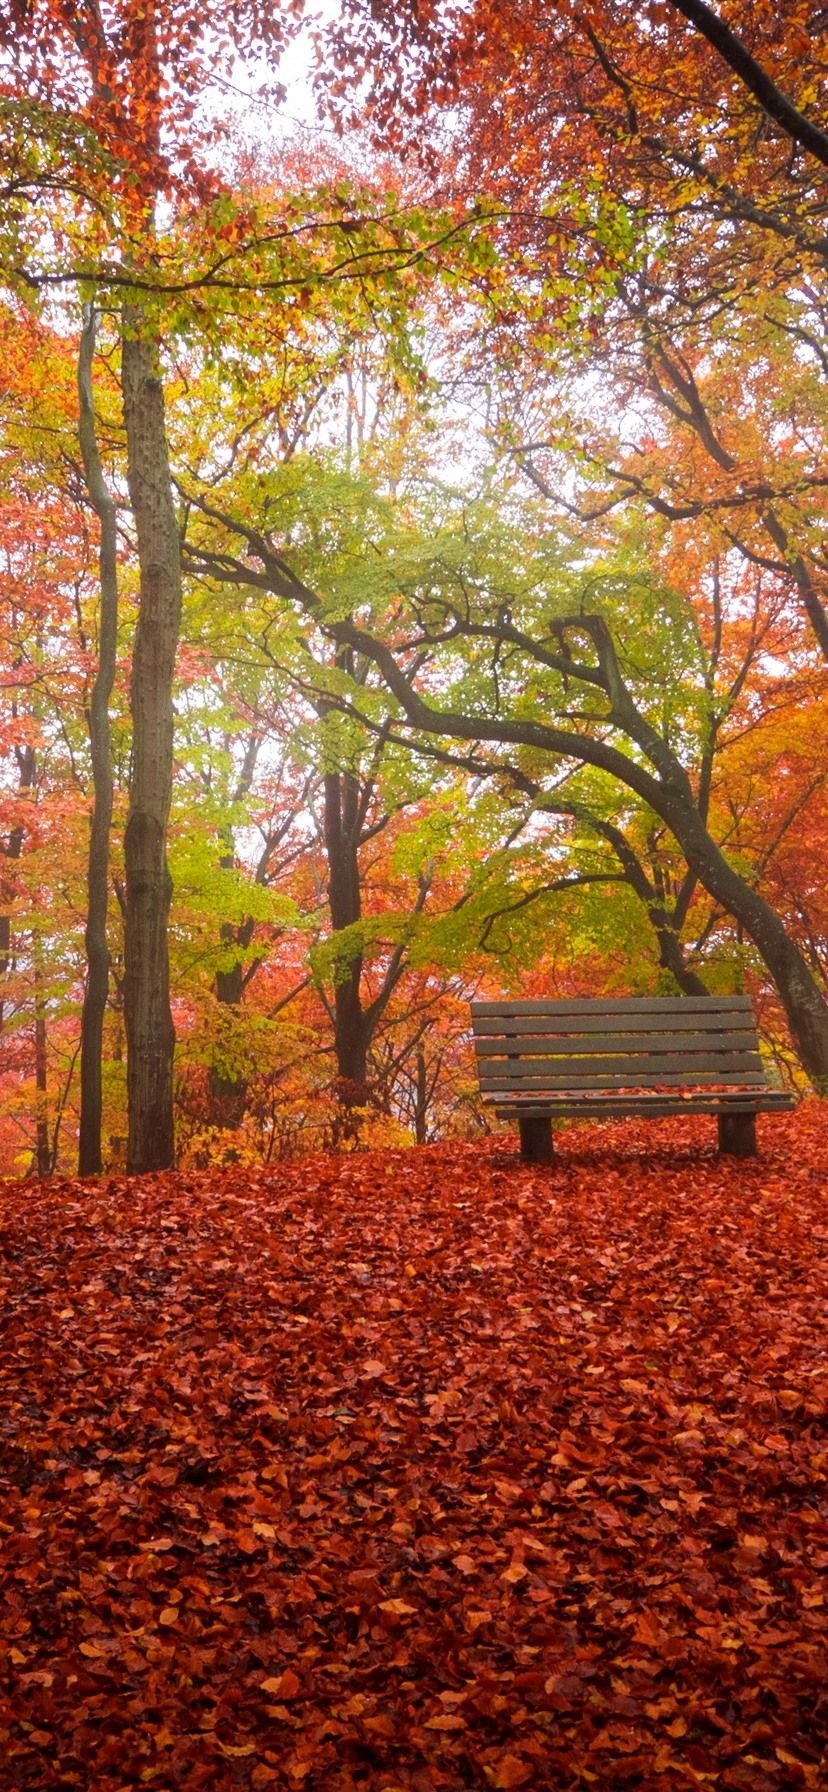 Iphone Xr Wallpaper Autumn Ipcwallpapers In 2020 Iphone Wallpaper Fall Fall Wallpaper Wallpaper Iphone Christmas